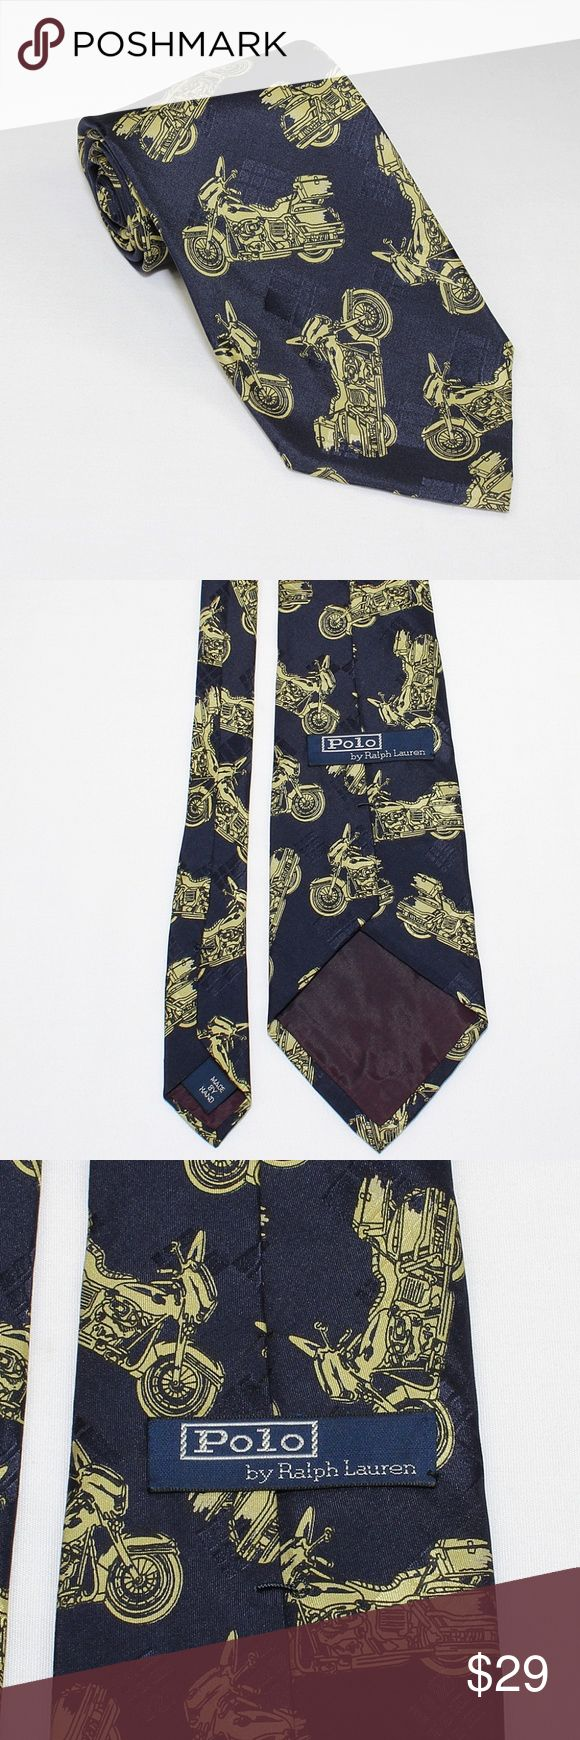 "Polo By Ralph Lauren Gold Motorcycle Silk Tie USA Description: Pre-owned, excellent condition. No rips, tares, or stains.  Length: 57 1/2"" (146cm) Width: 3 13/16"" (9cm)  Manufacture: Polo by Ralph Lauren. Made by Hand. Made in U.S.A. from imported fabric. 100% Silk. RN: 41381.  Item #: 273050280489 Polo by Ralph Lauren Accessories Ties"